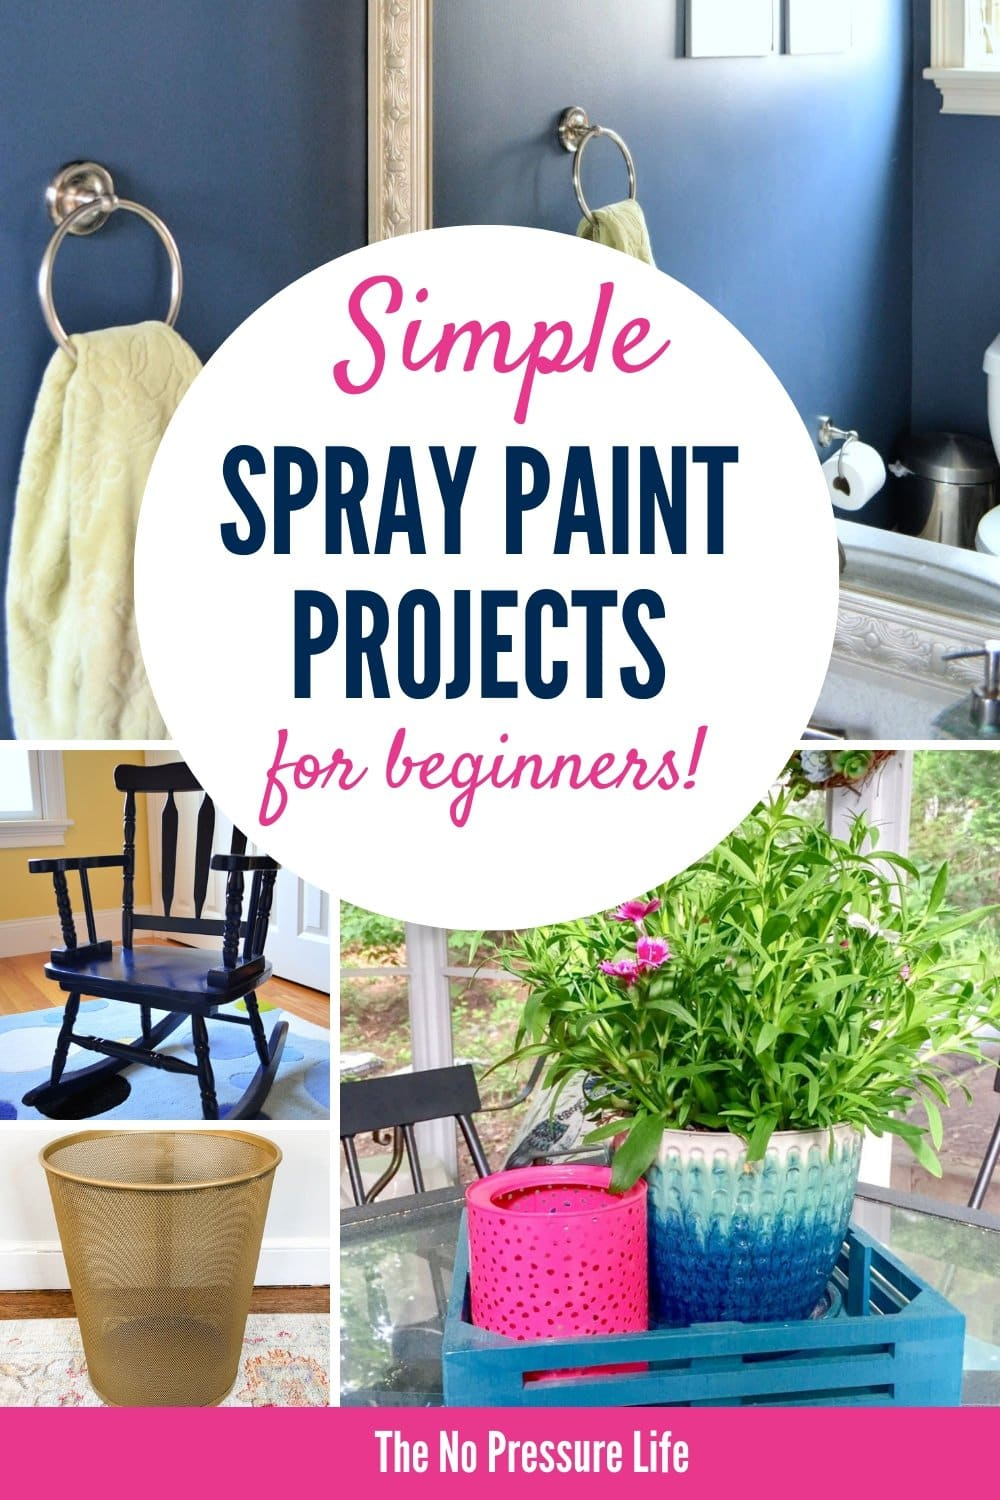 Easy DIY spray paint projects and ideas